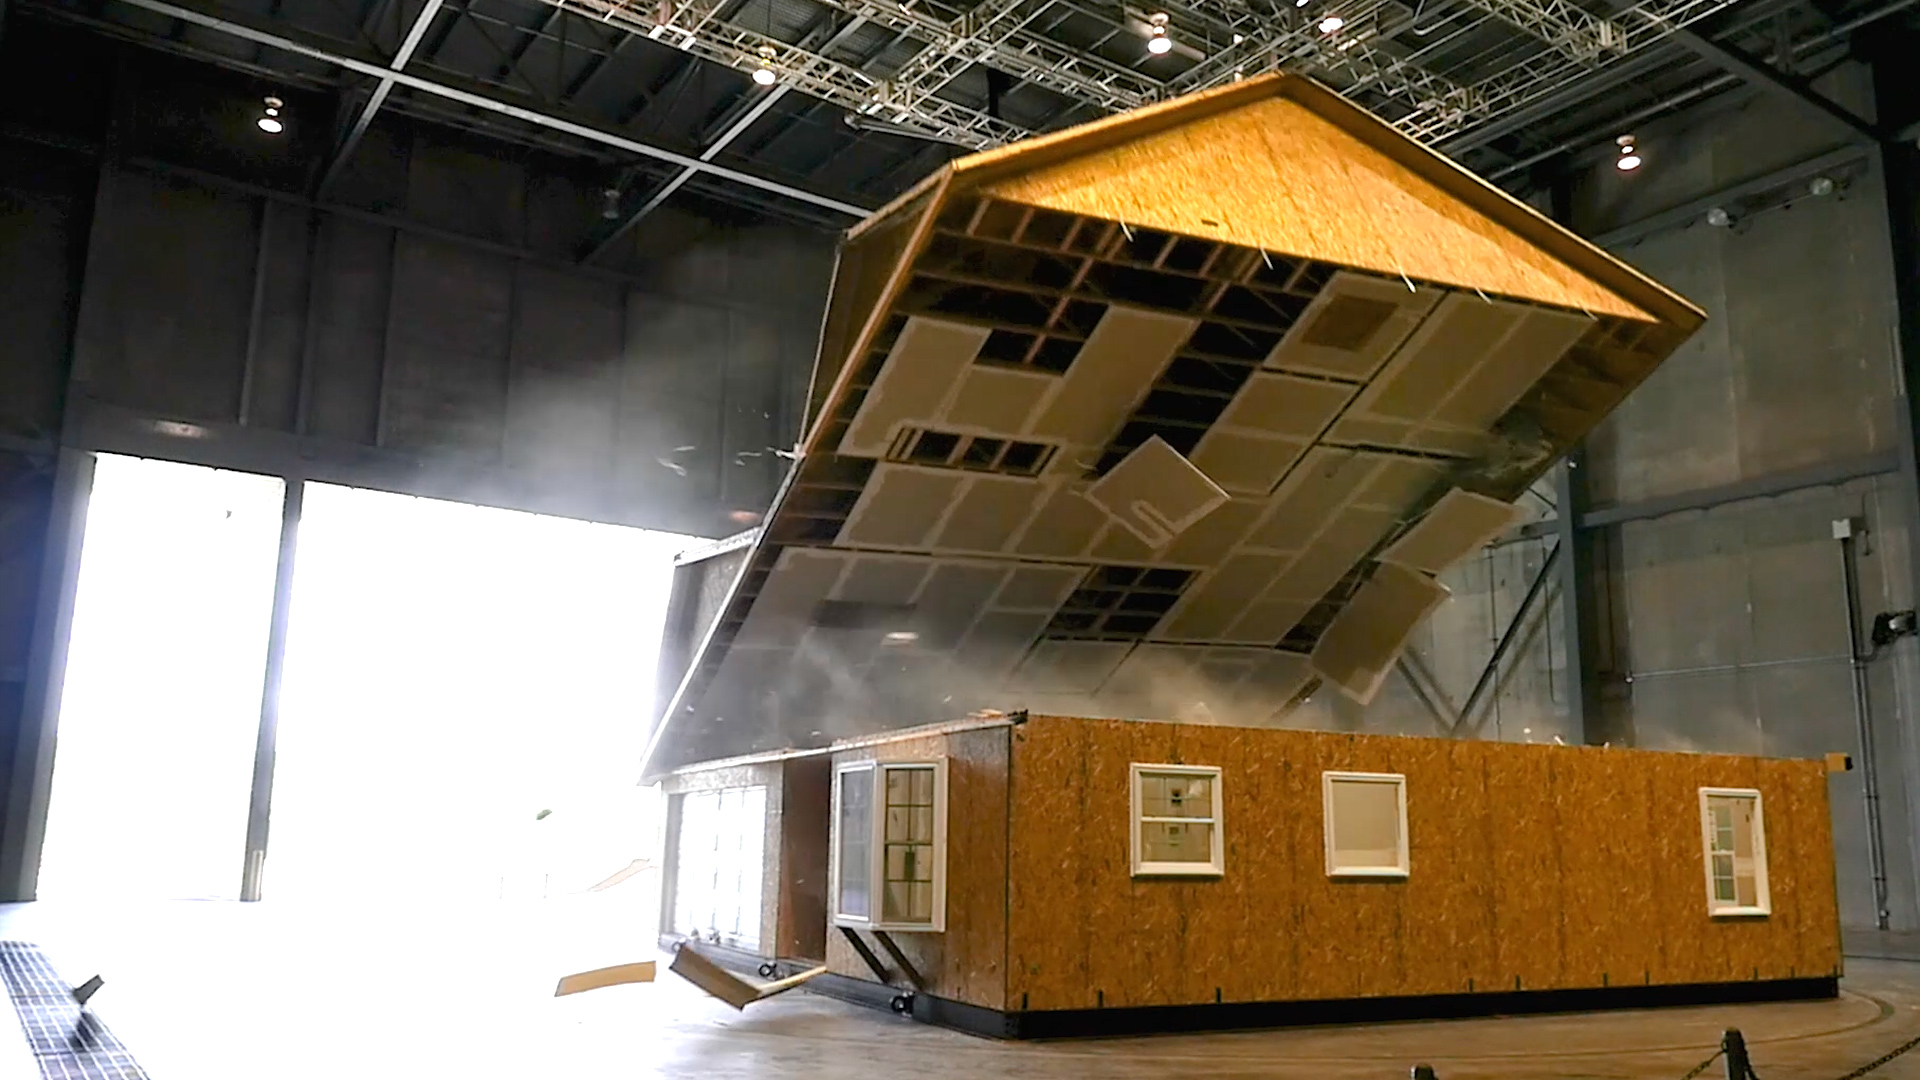 Watch what winds over 100 mph do to this house on hurricane proof house designs, home interior design, safe room design,